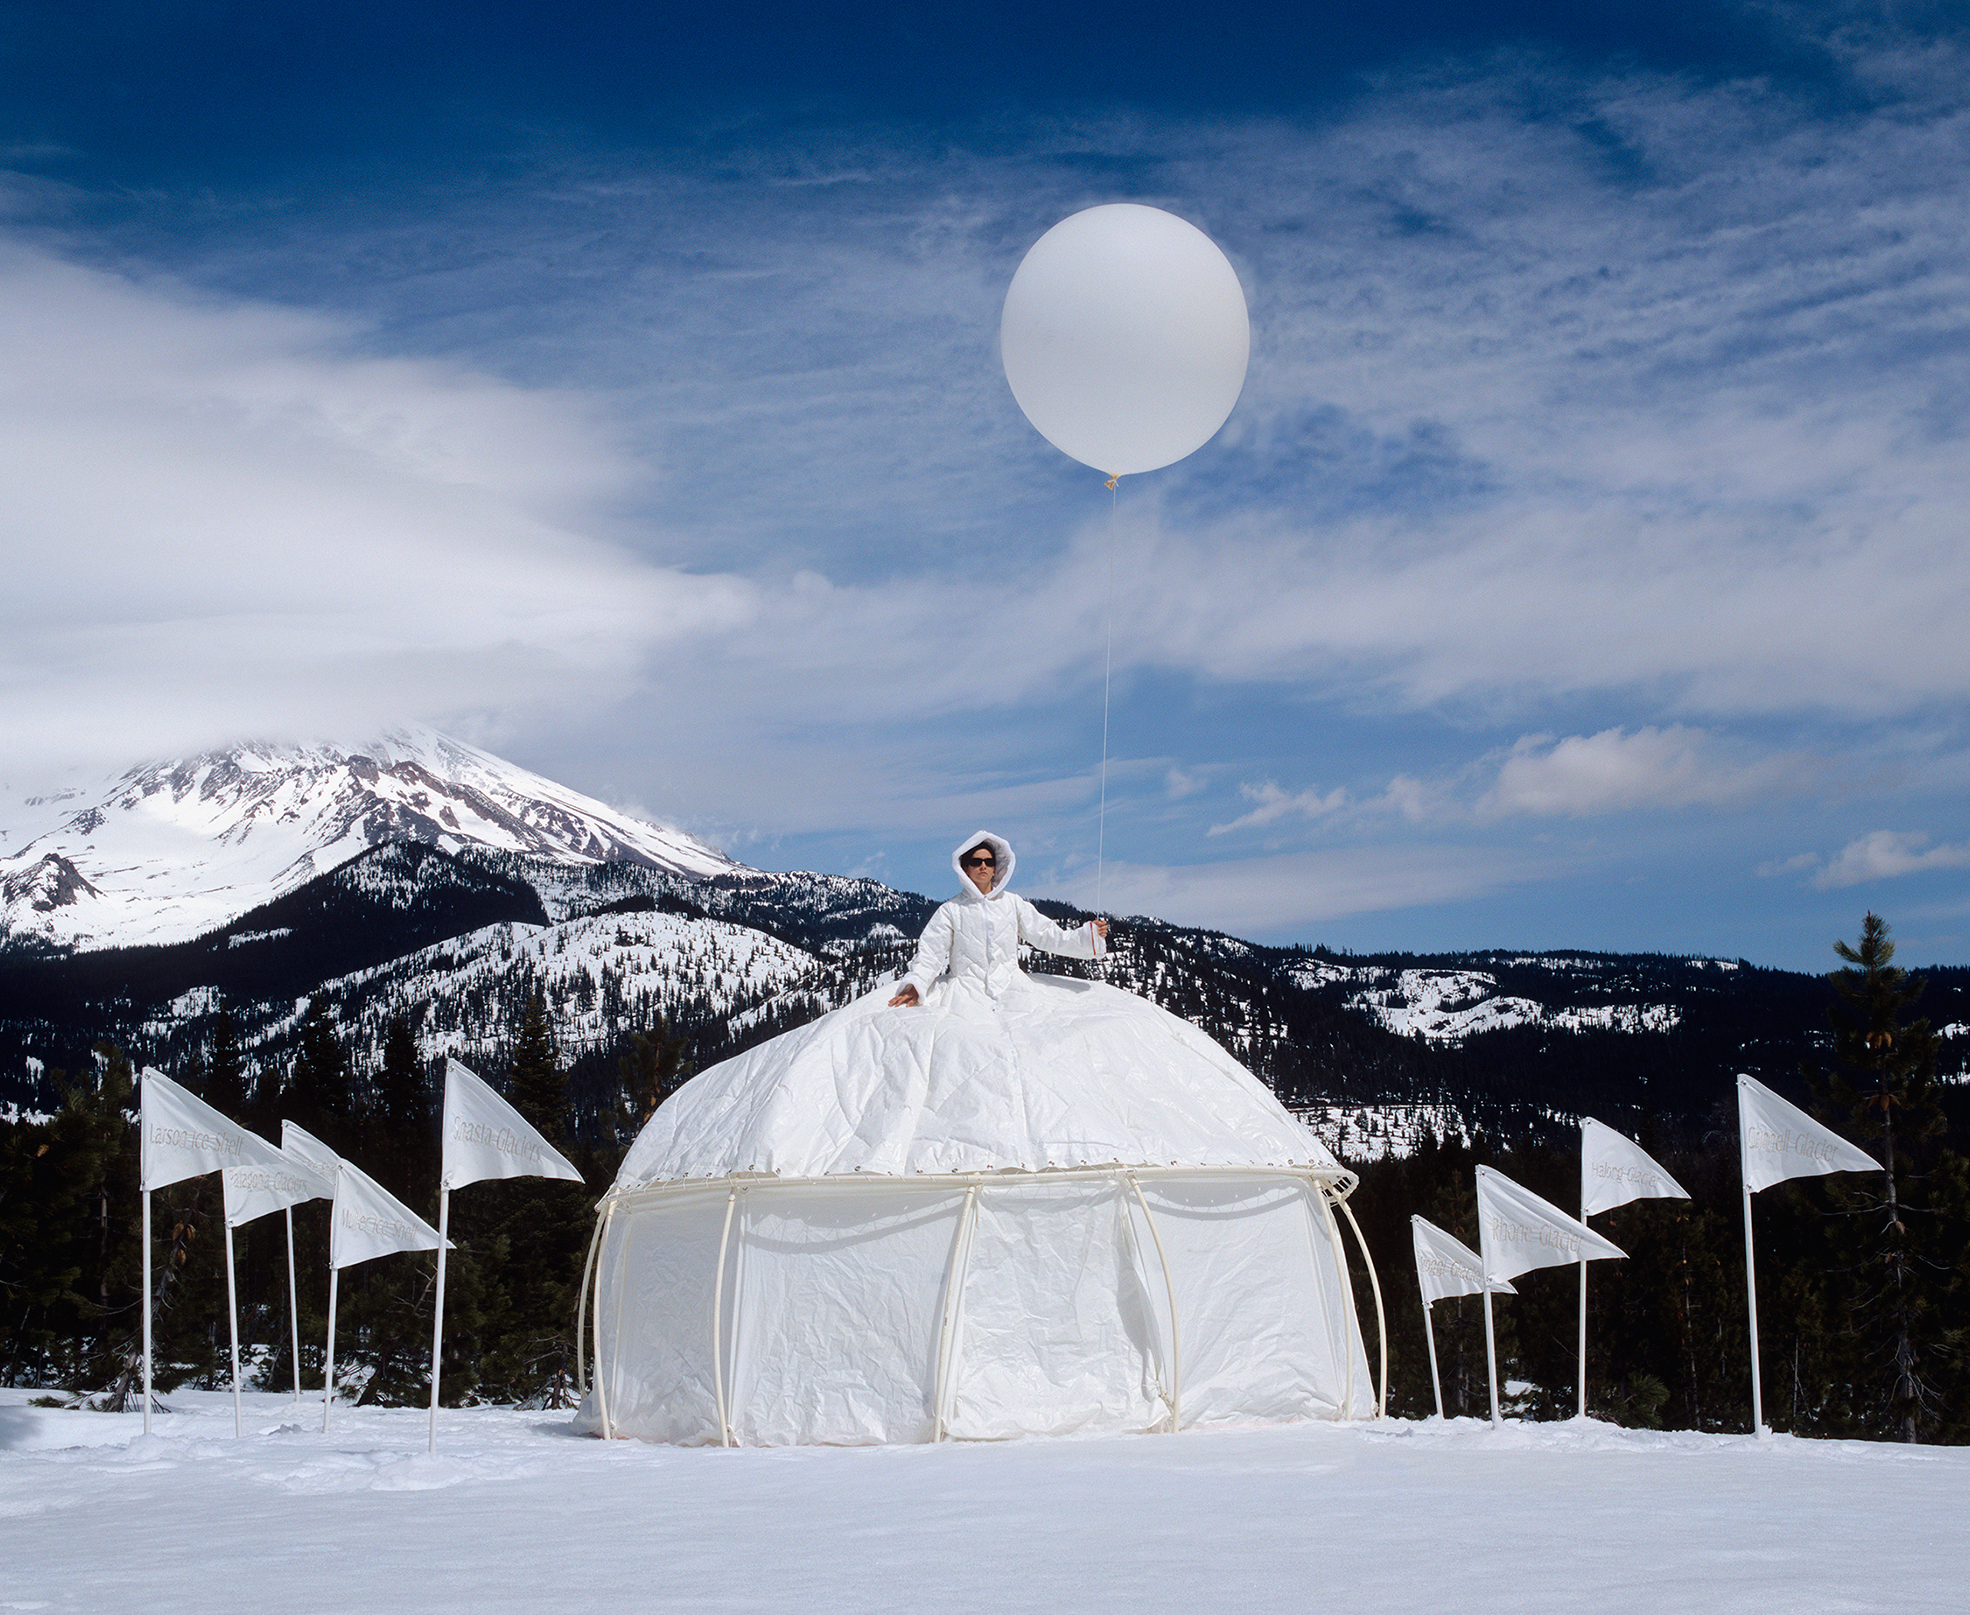 ICE QUEEN: GLACIAL RETREAT DRESS TENT